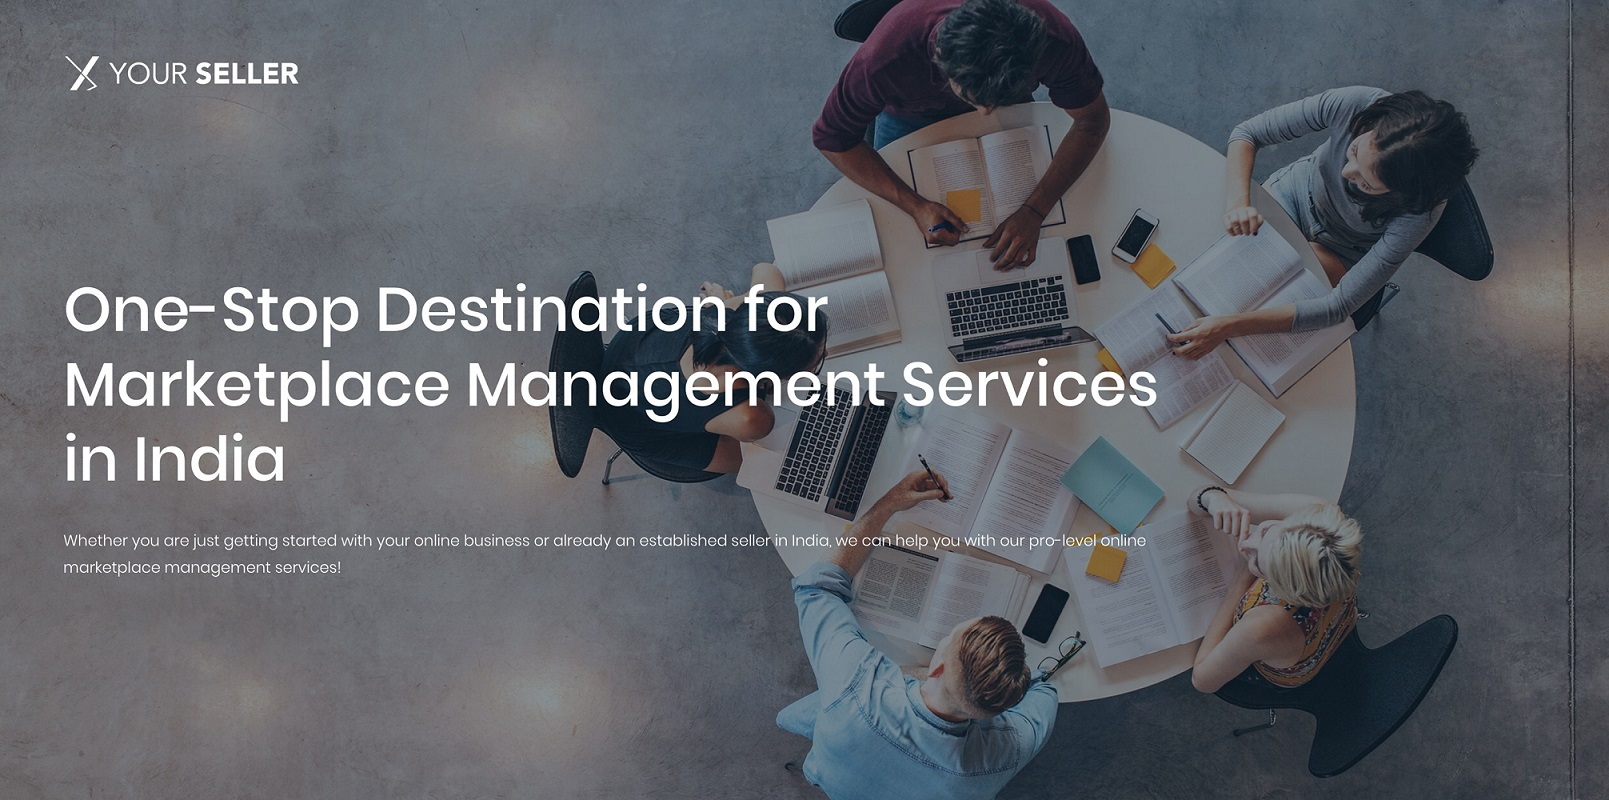 One-Stop Destination for eCommerce Marketplace Management